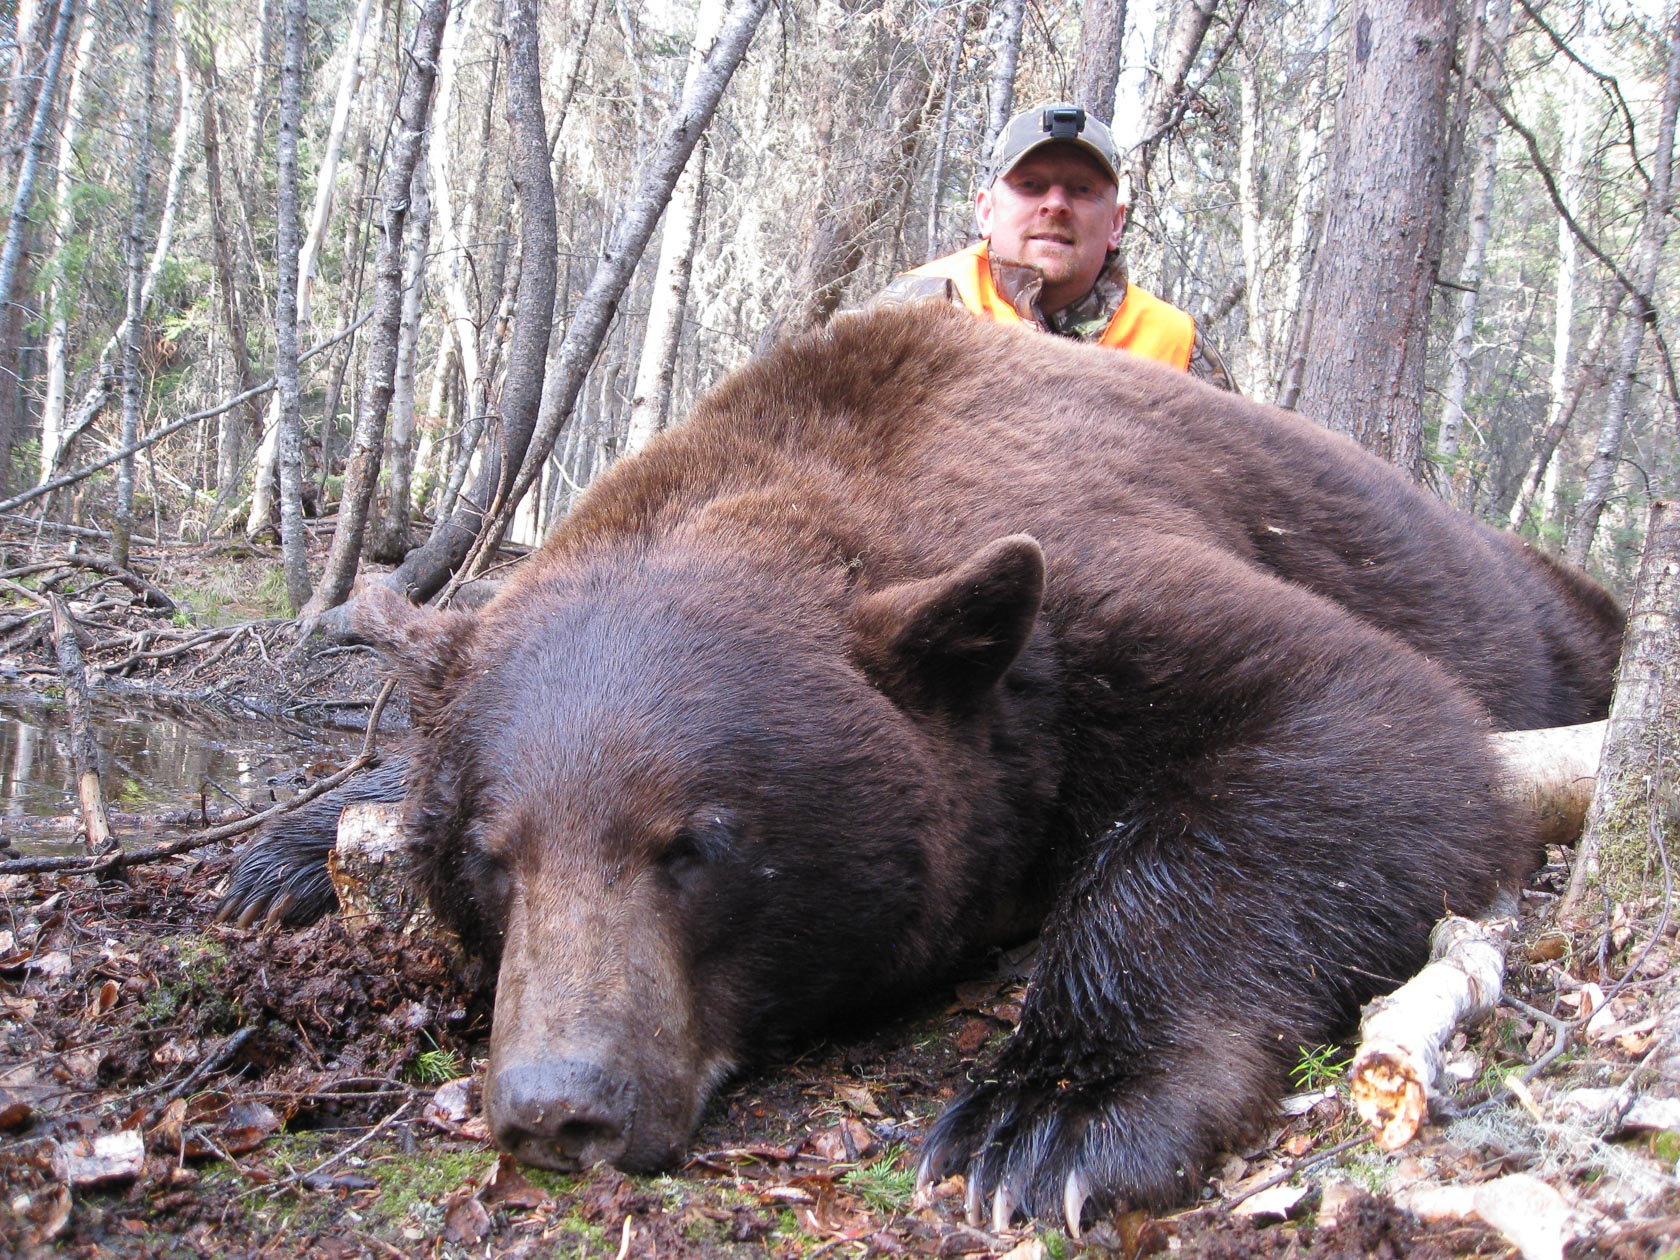 A man kneels behind a very large black bear that has a light brown colouring.